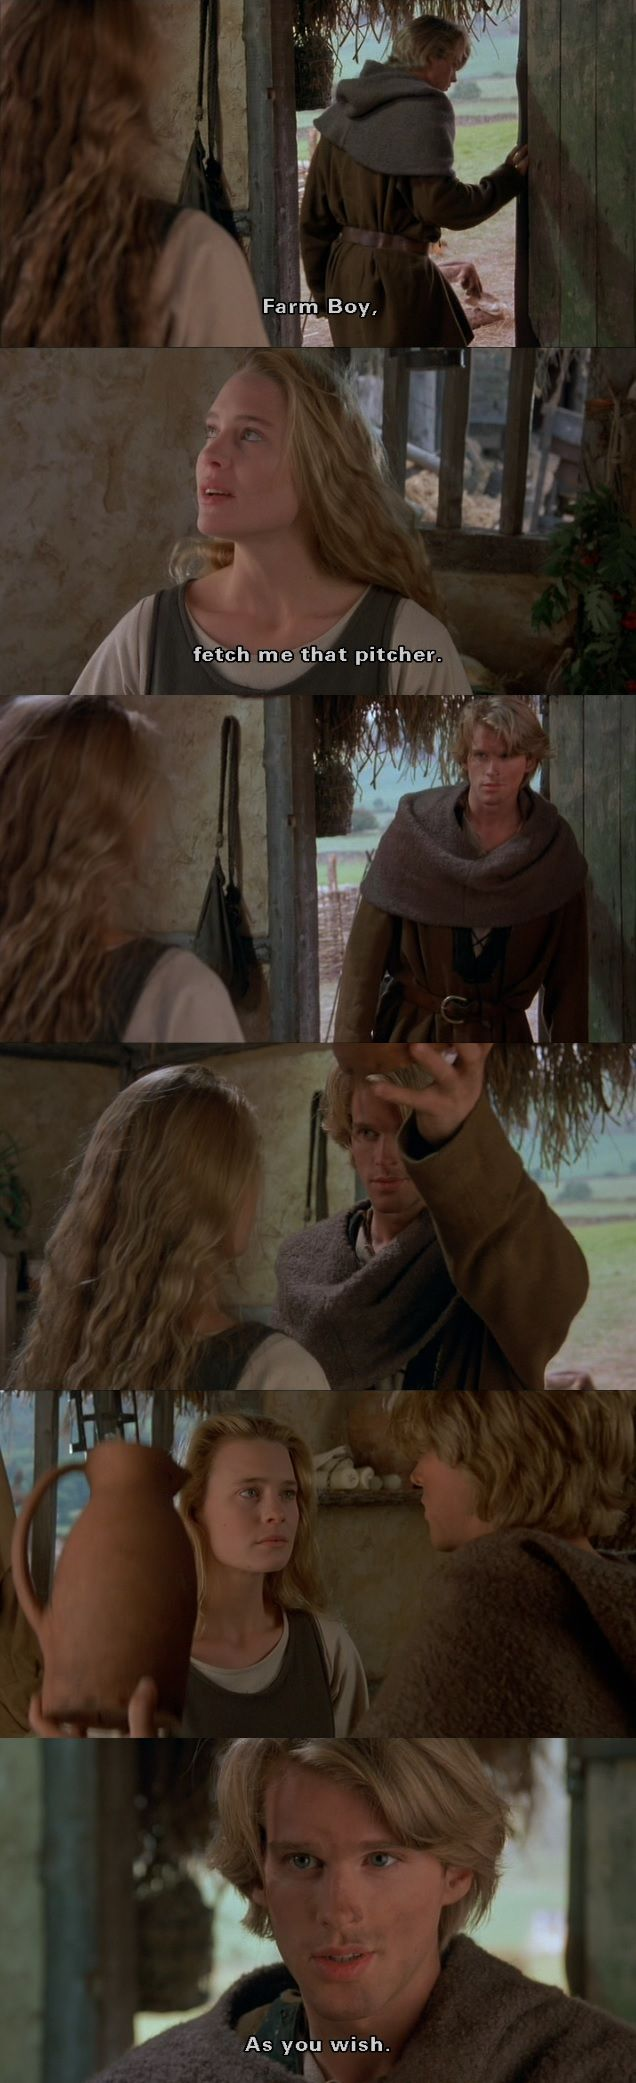 the princess bride movies farm boys the pitcher the princess bride